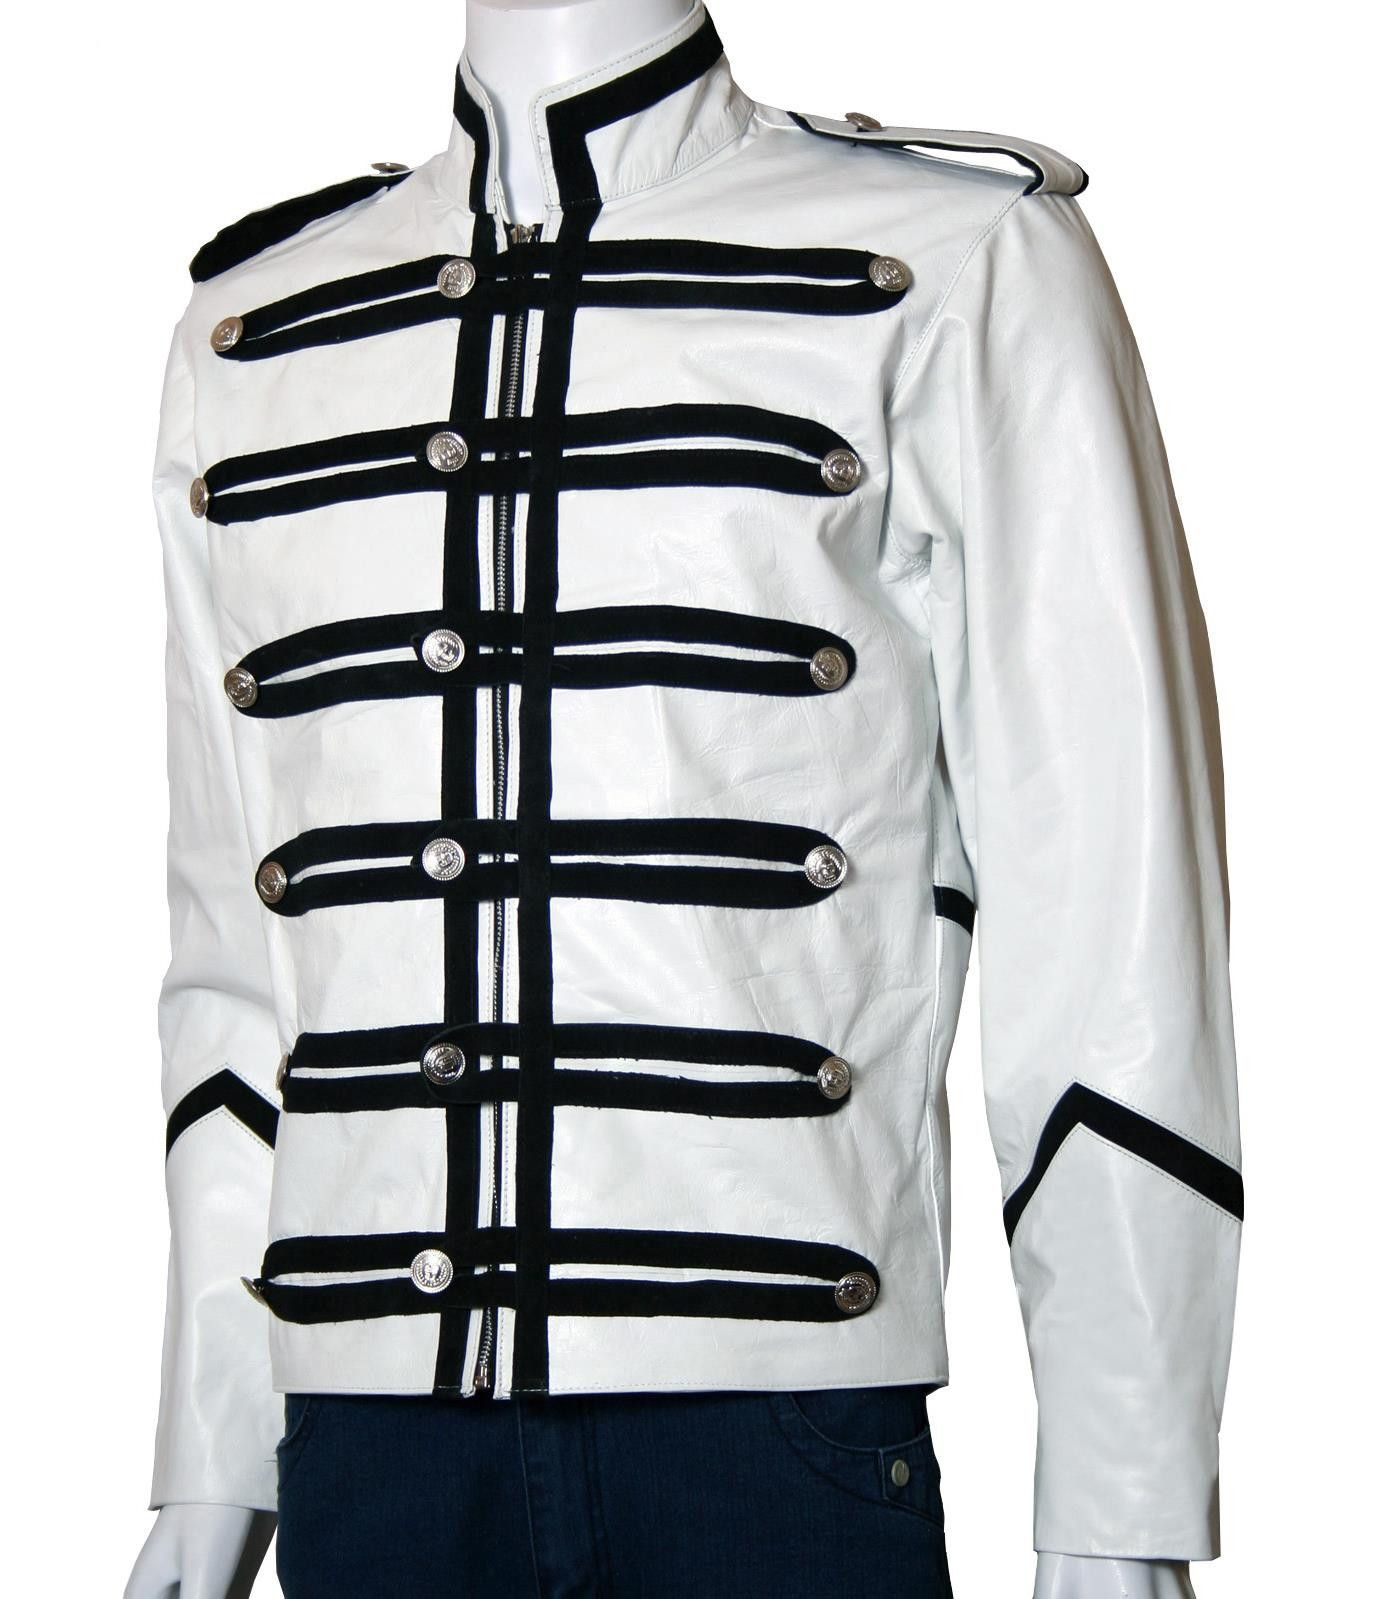 White Leather Military Jacket for Men has been designed